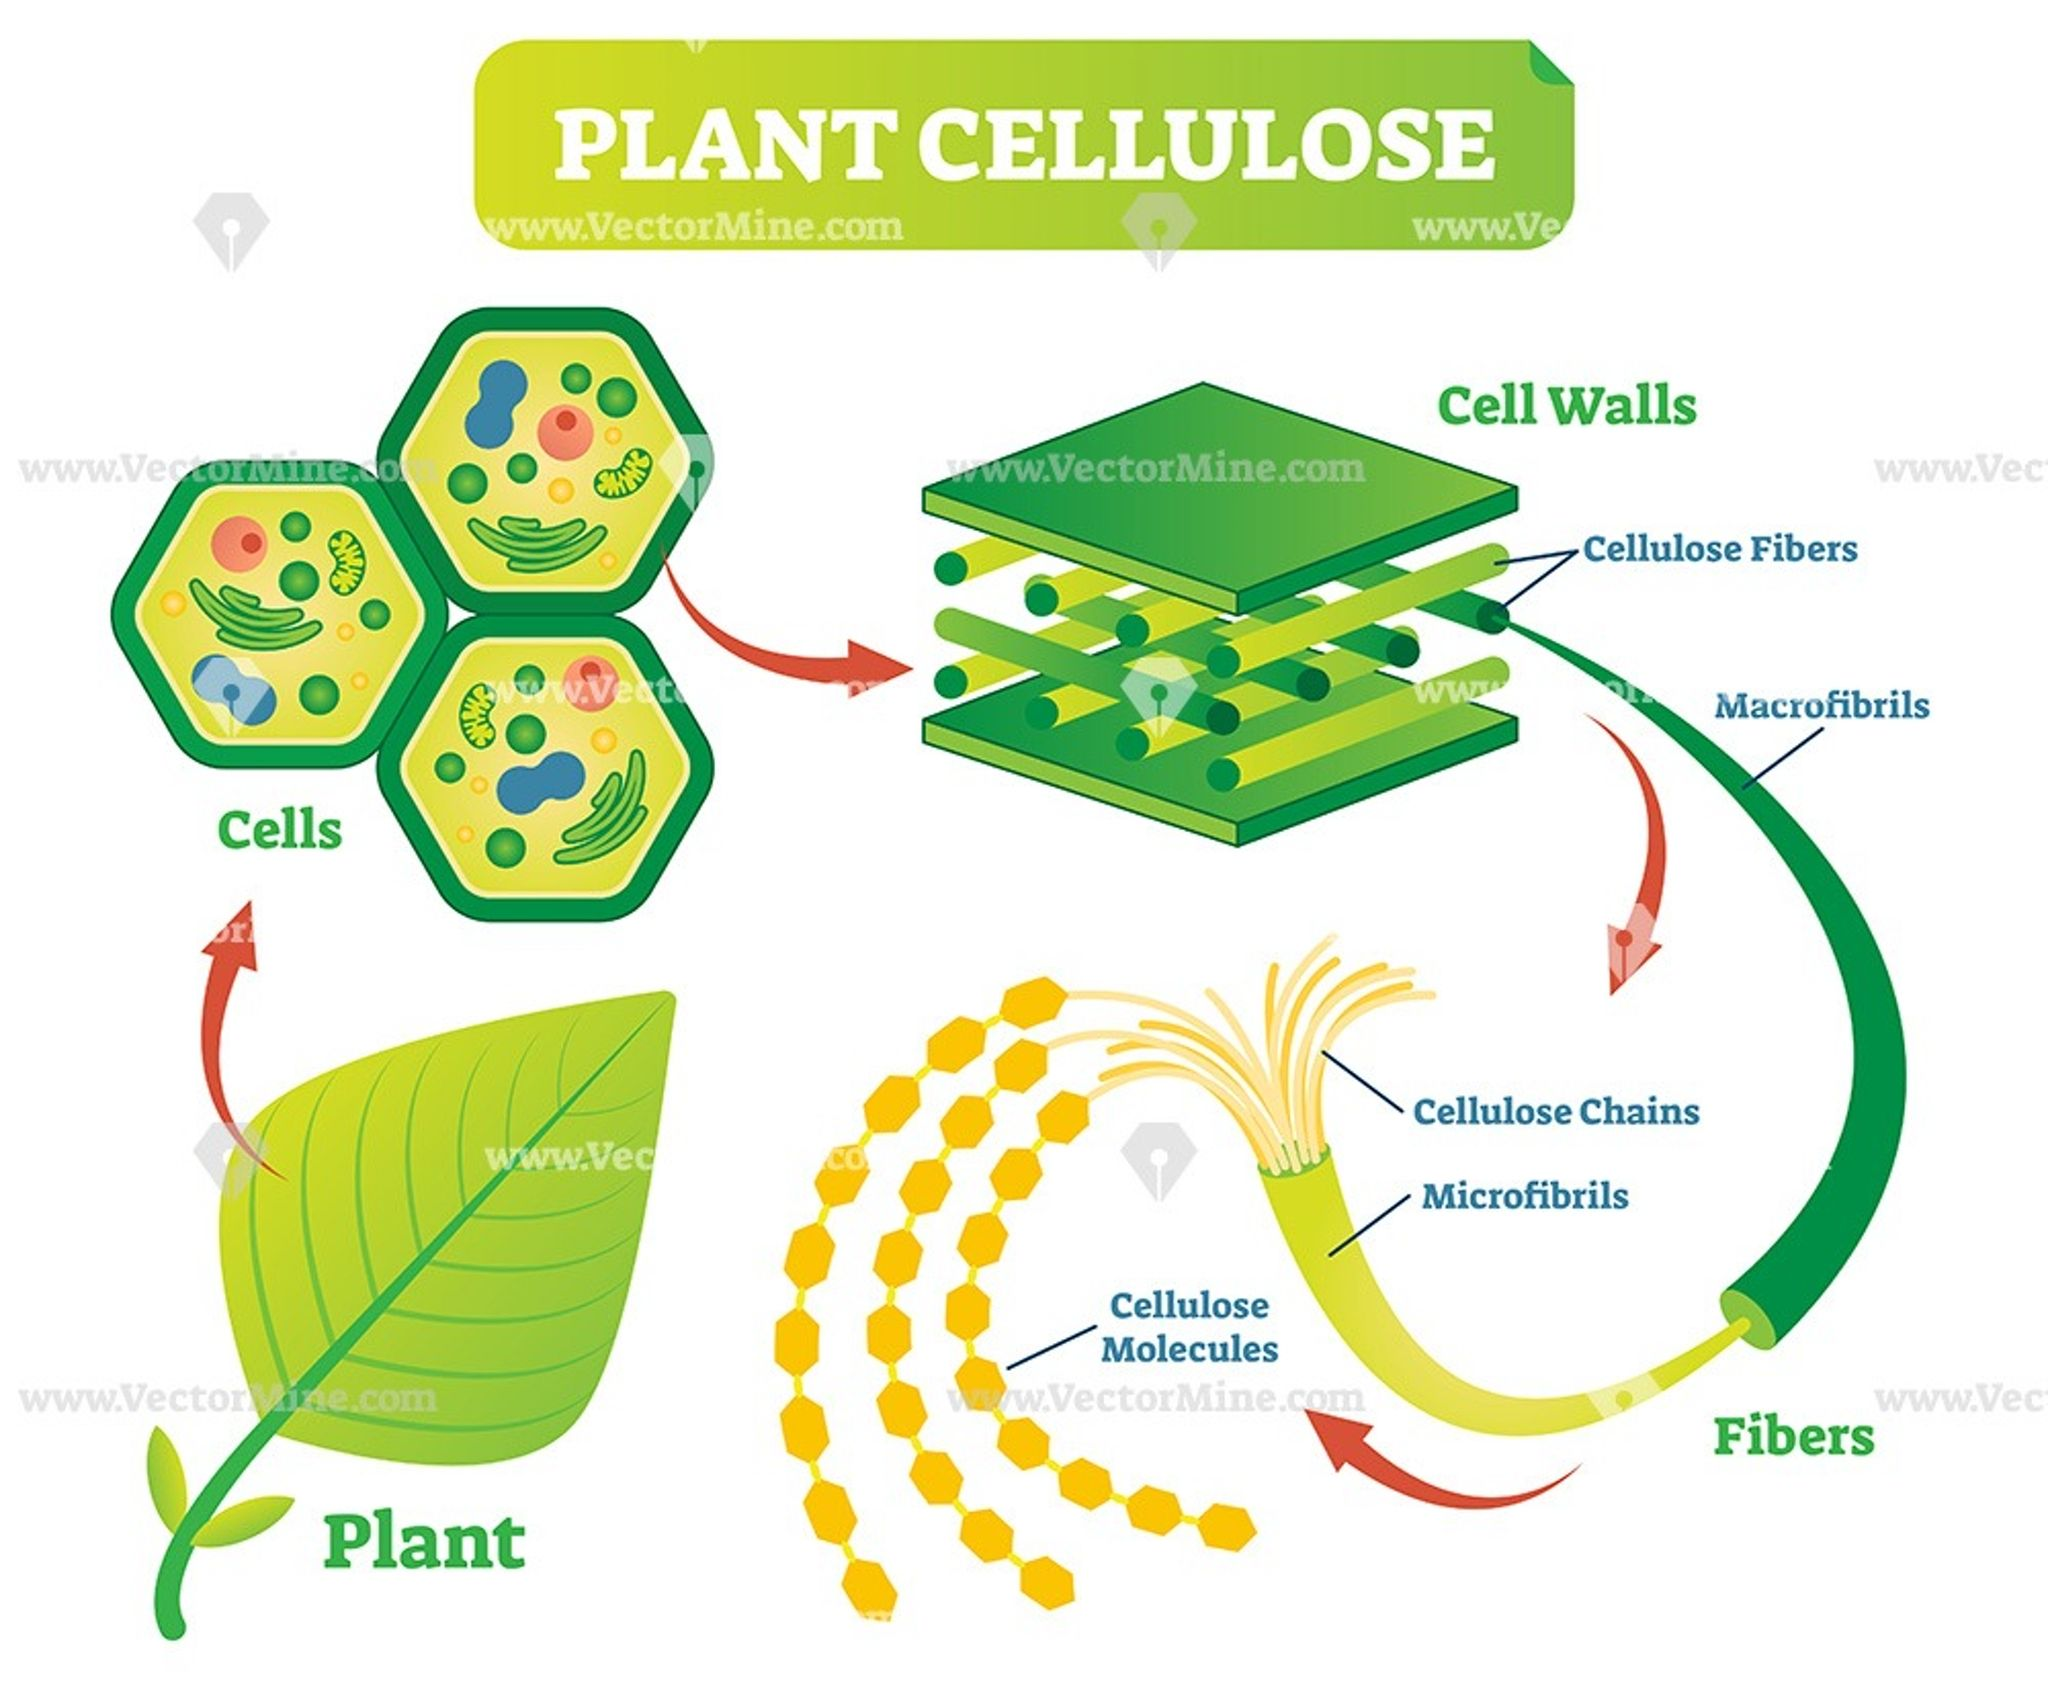 Plant cellulose biology vector illustration diagram | Cell ...